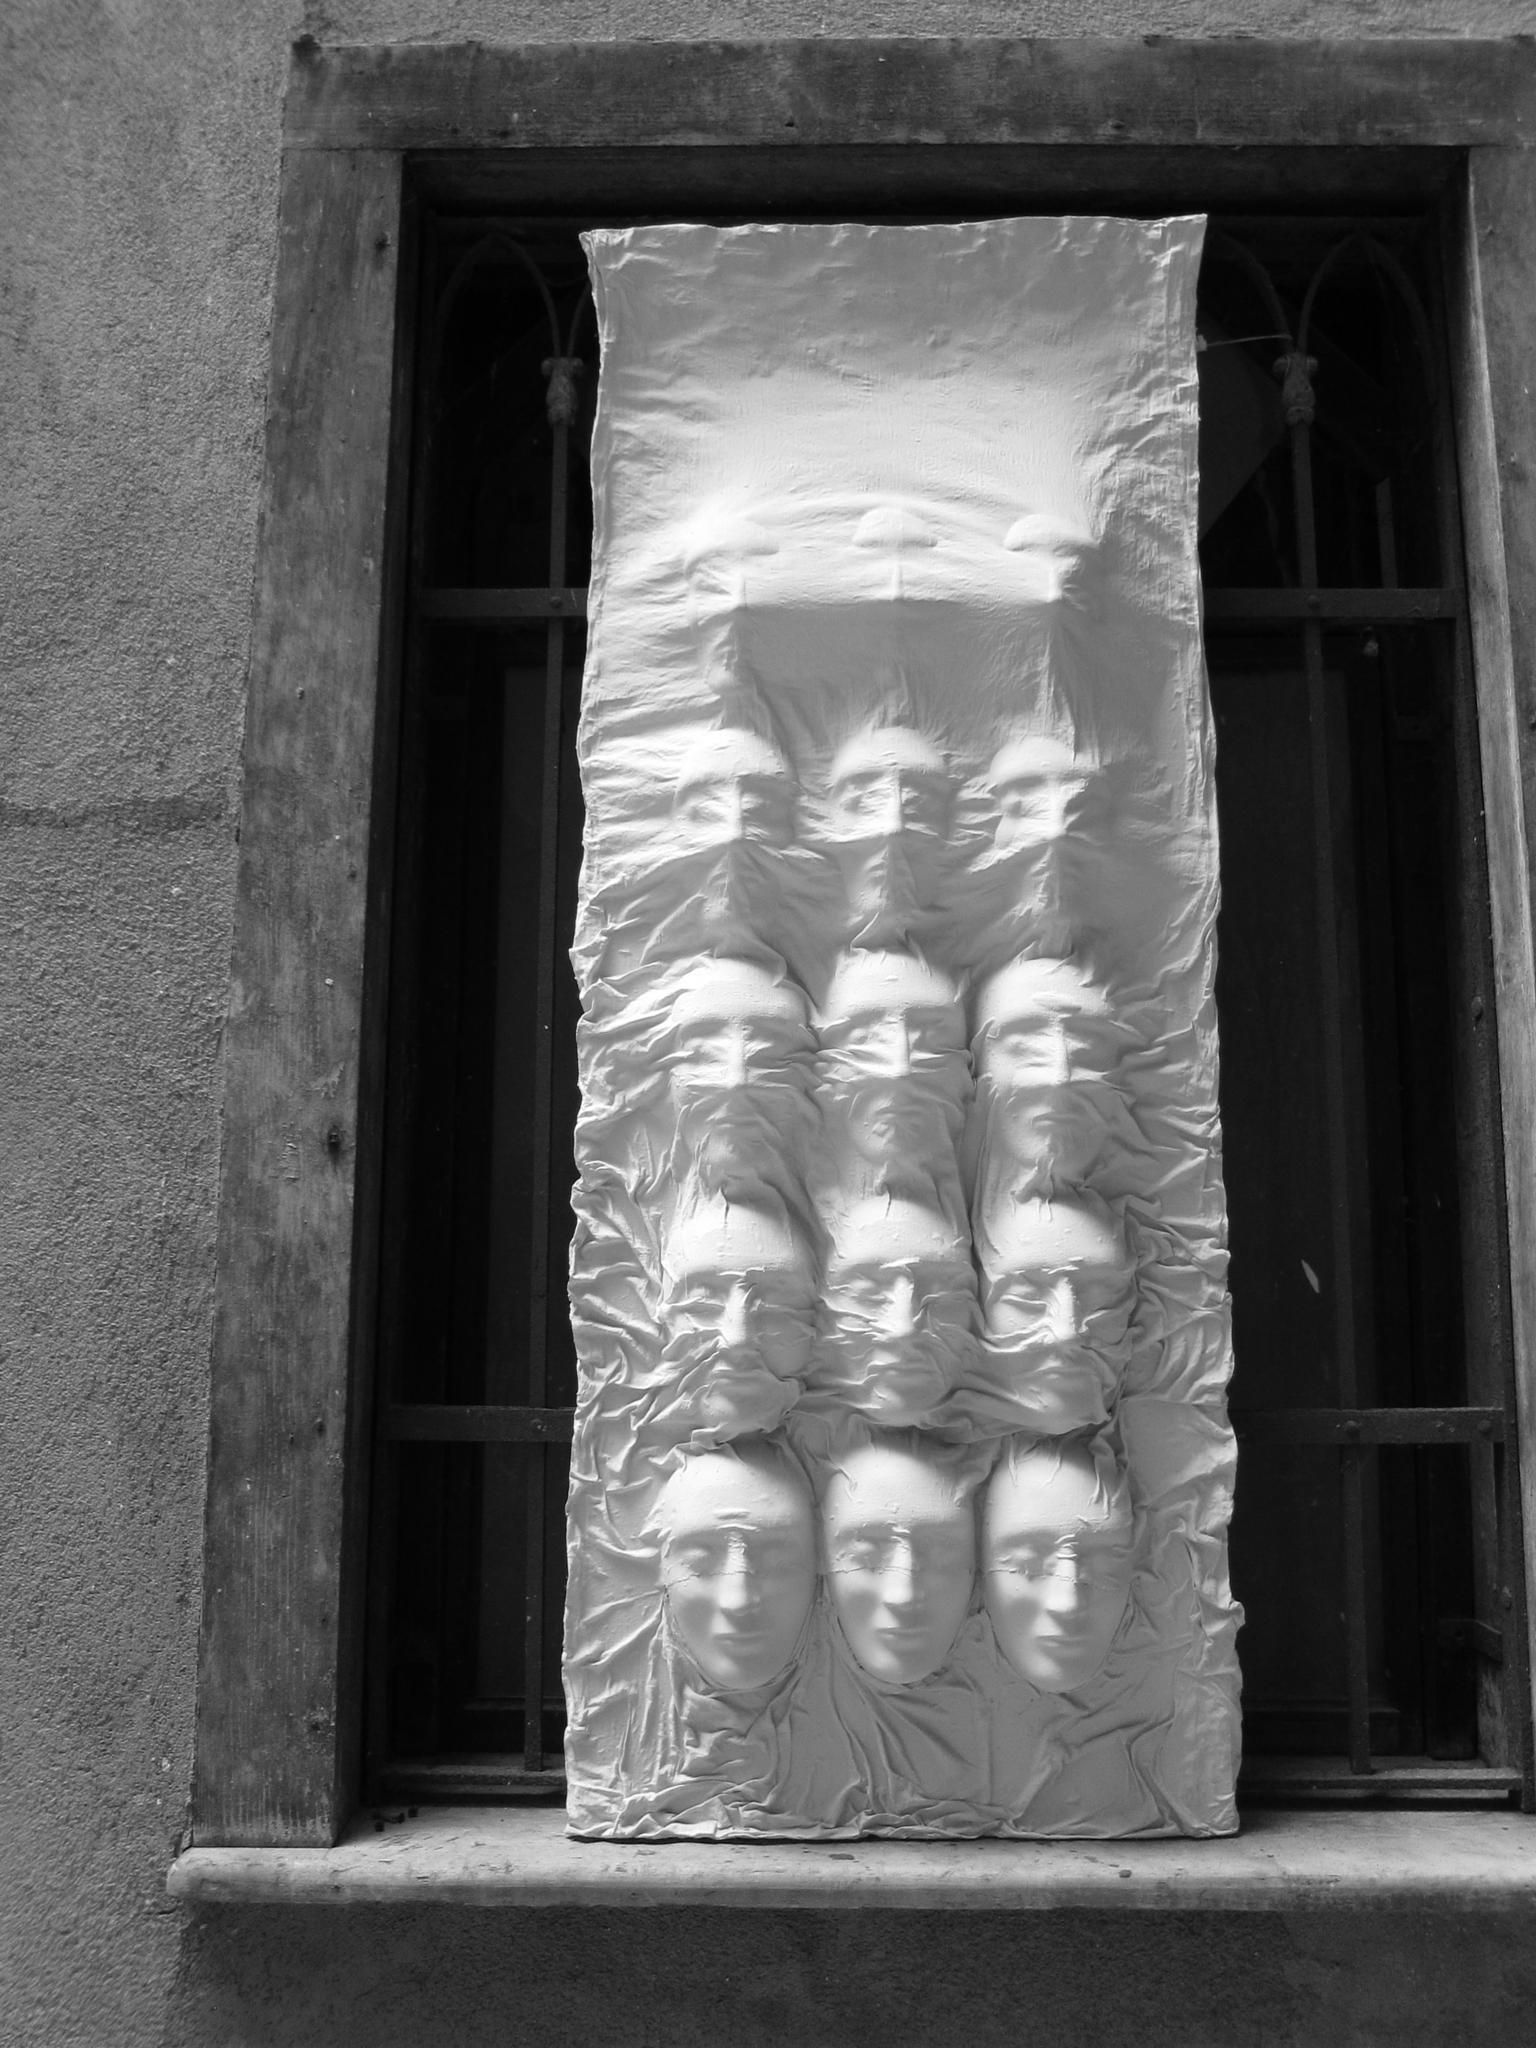 Faces in the window by Carolyn Chase